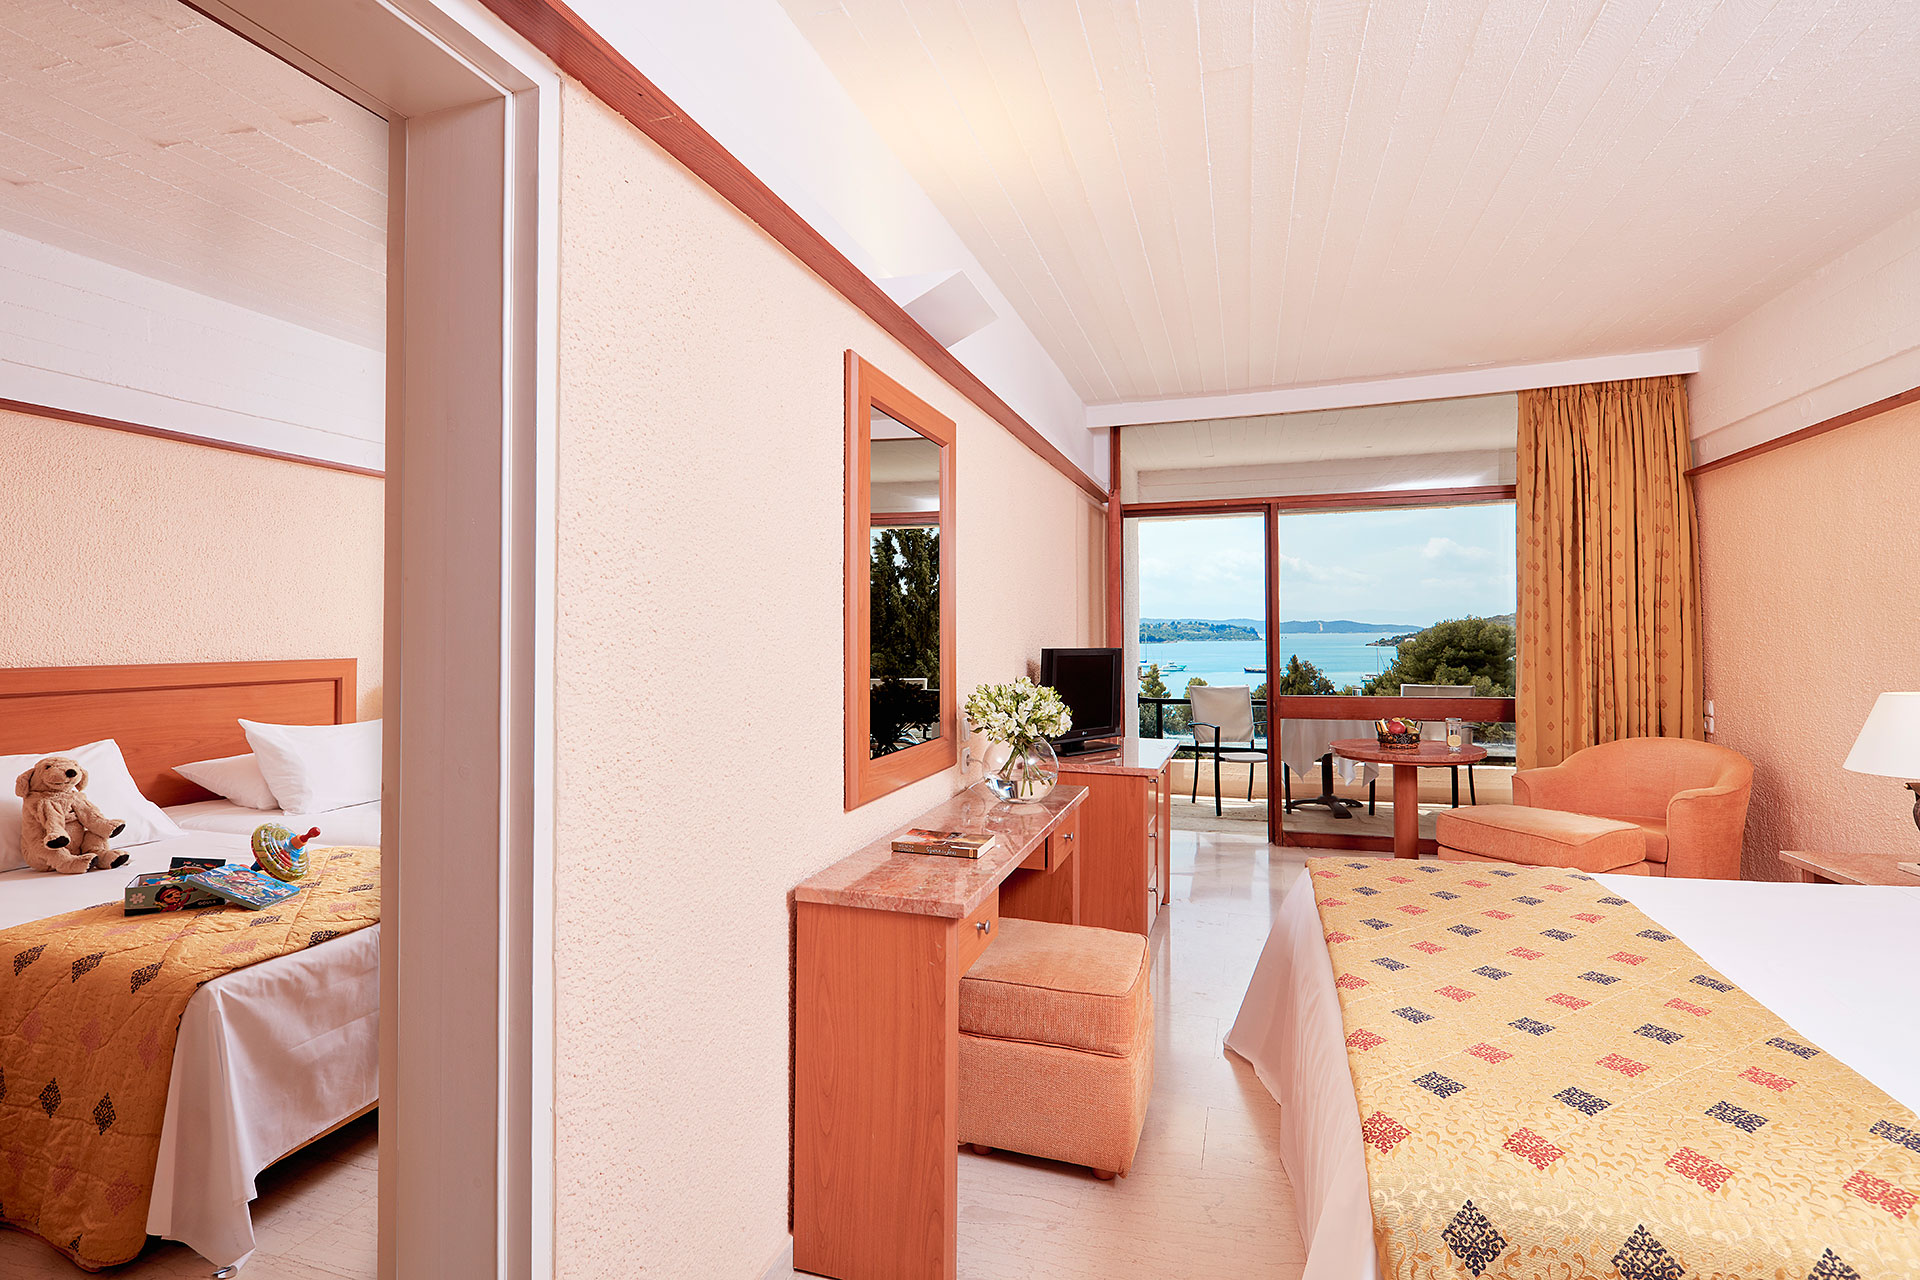 Standard Interconnecting Rooms With Sea View